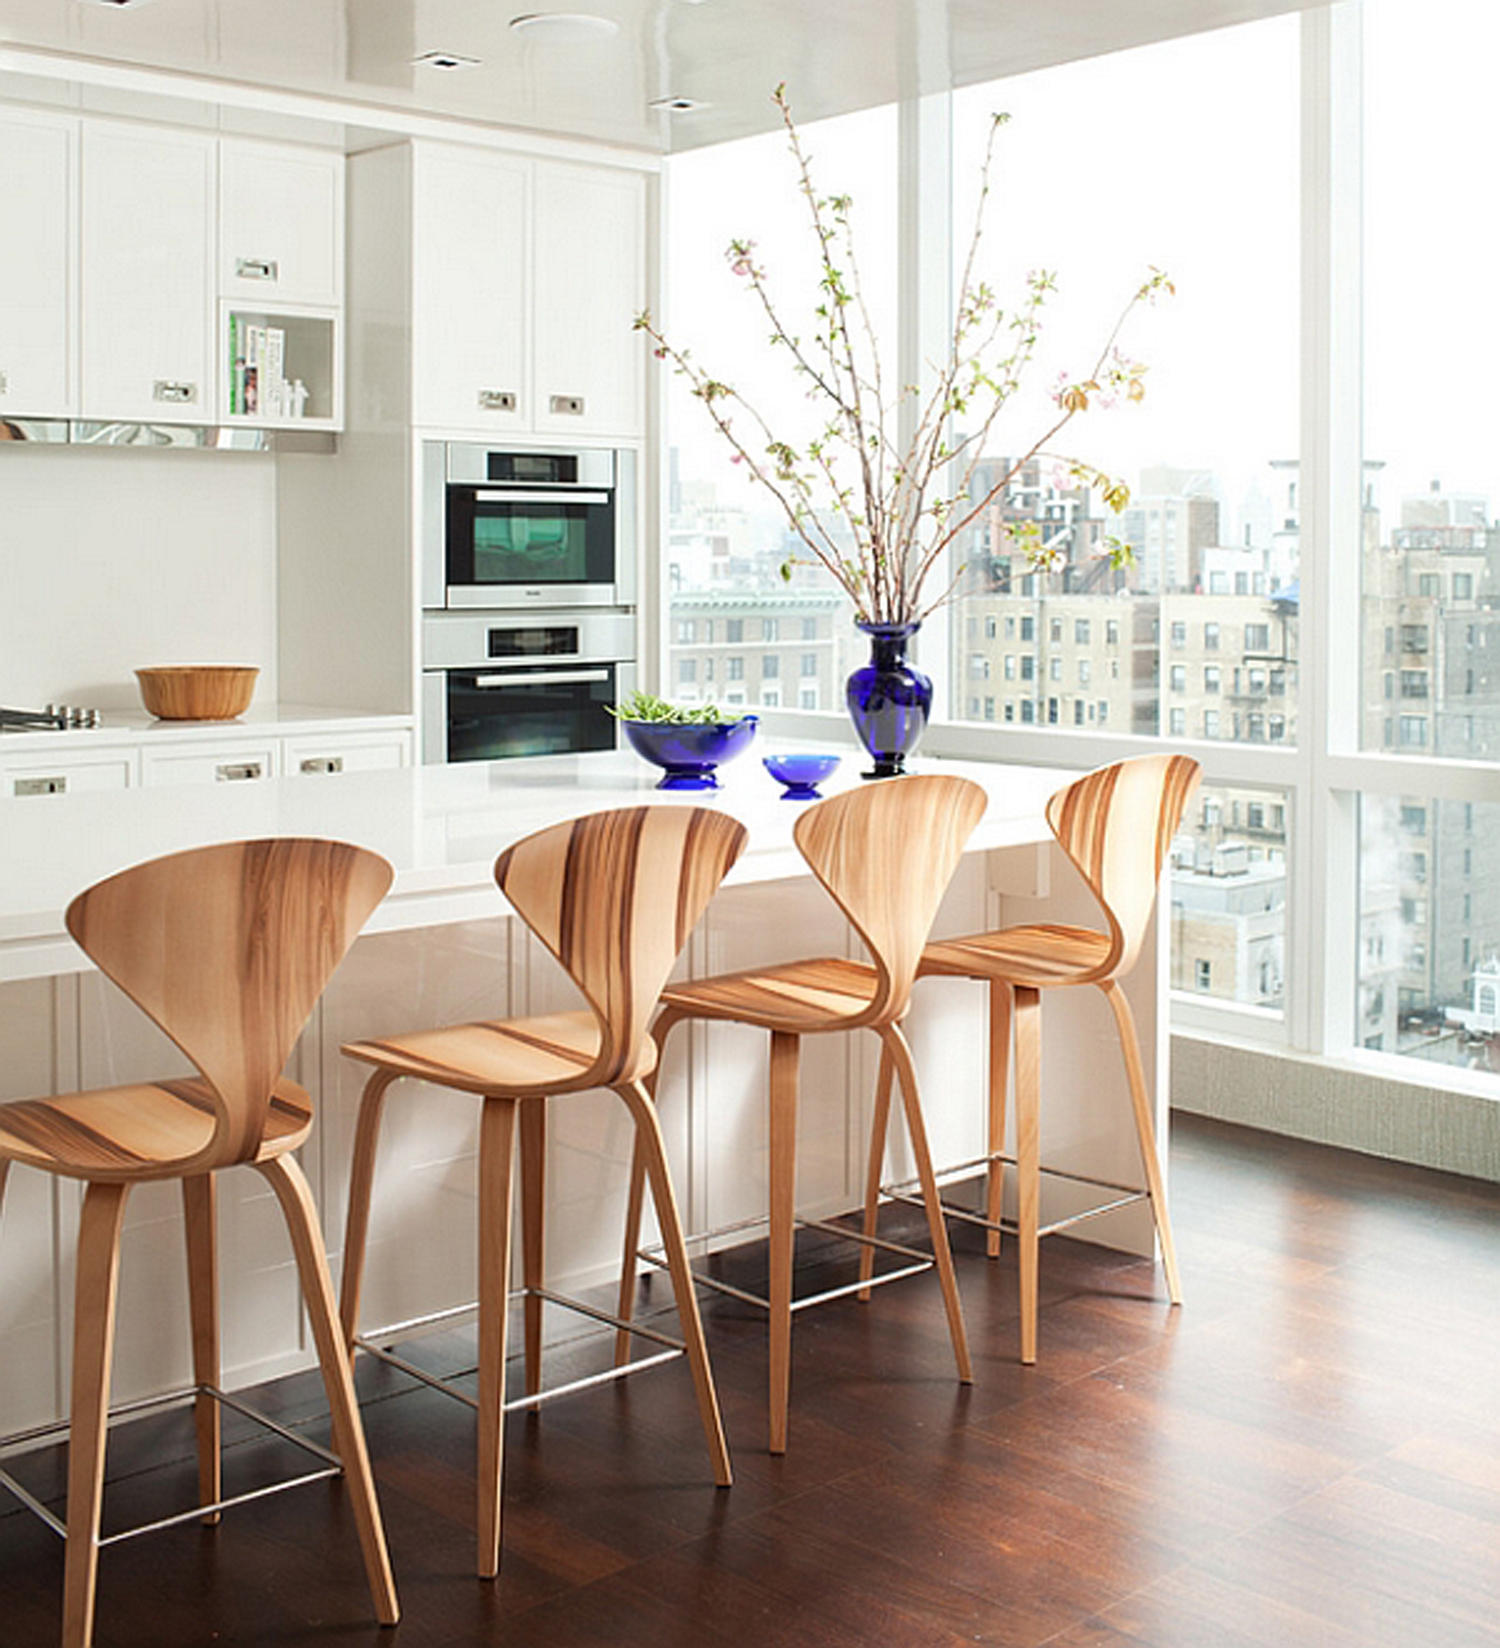 Kitchen Counter And Stools Cherner Wood Base Stool Bar Stools From Cherner Architonic